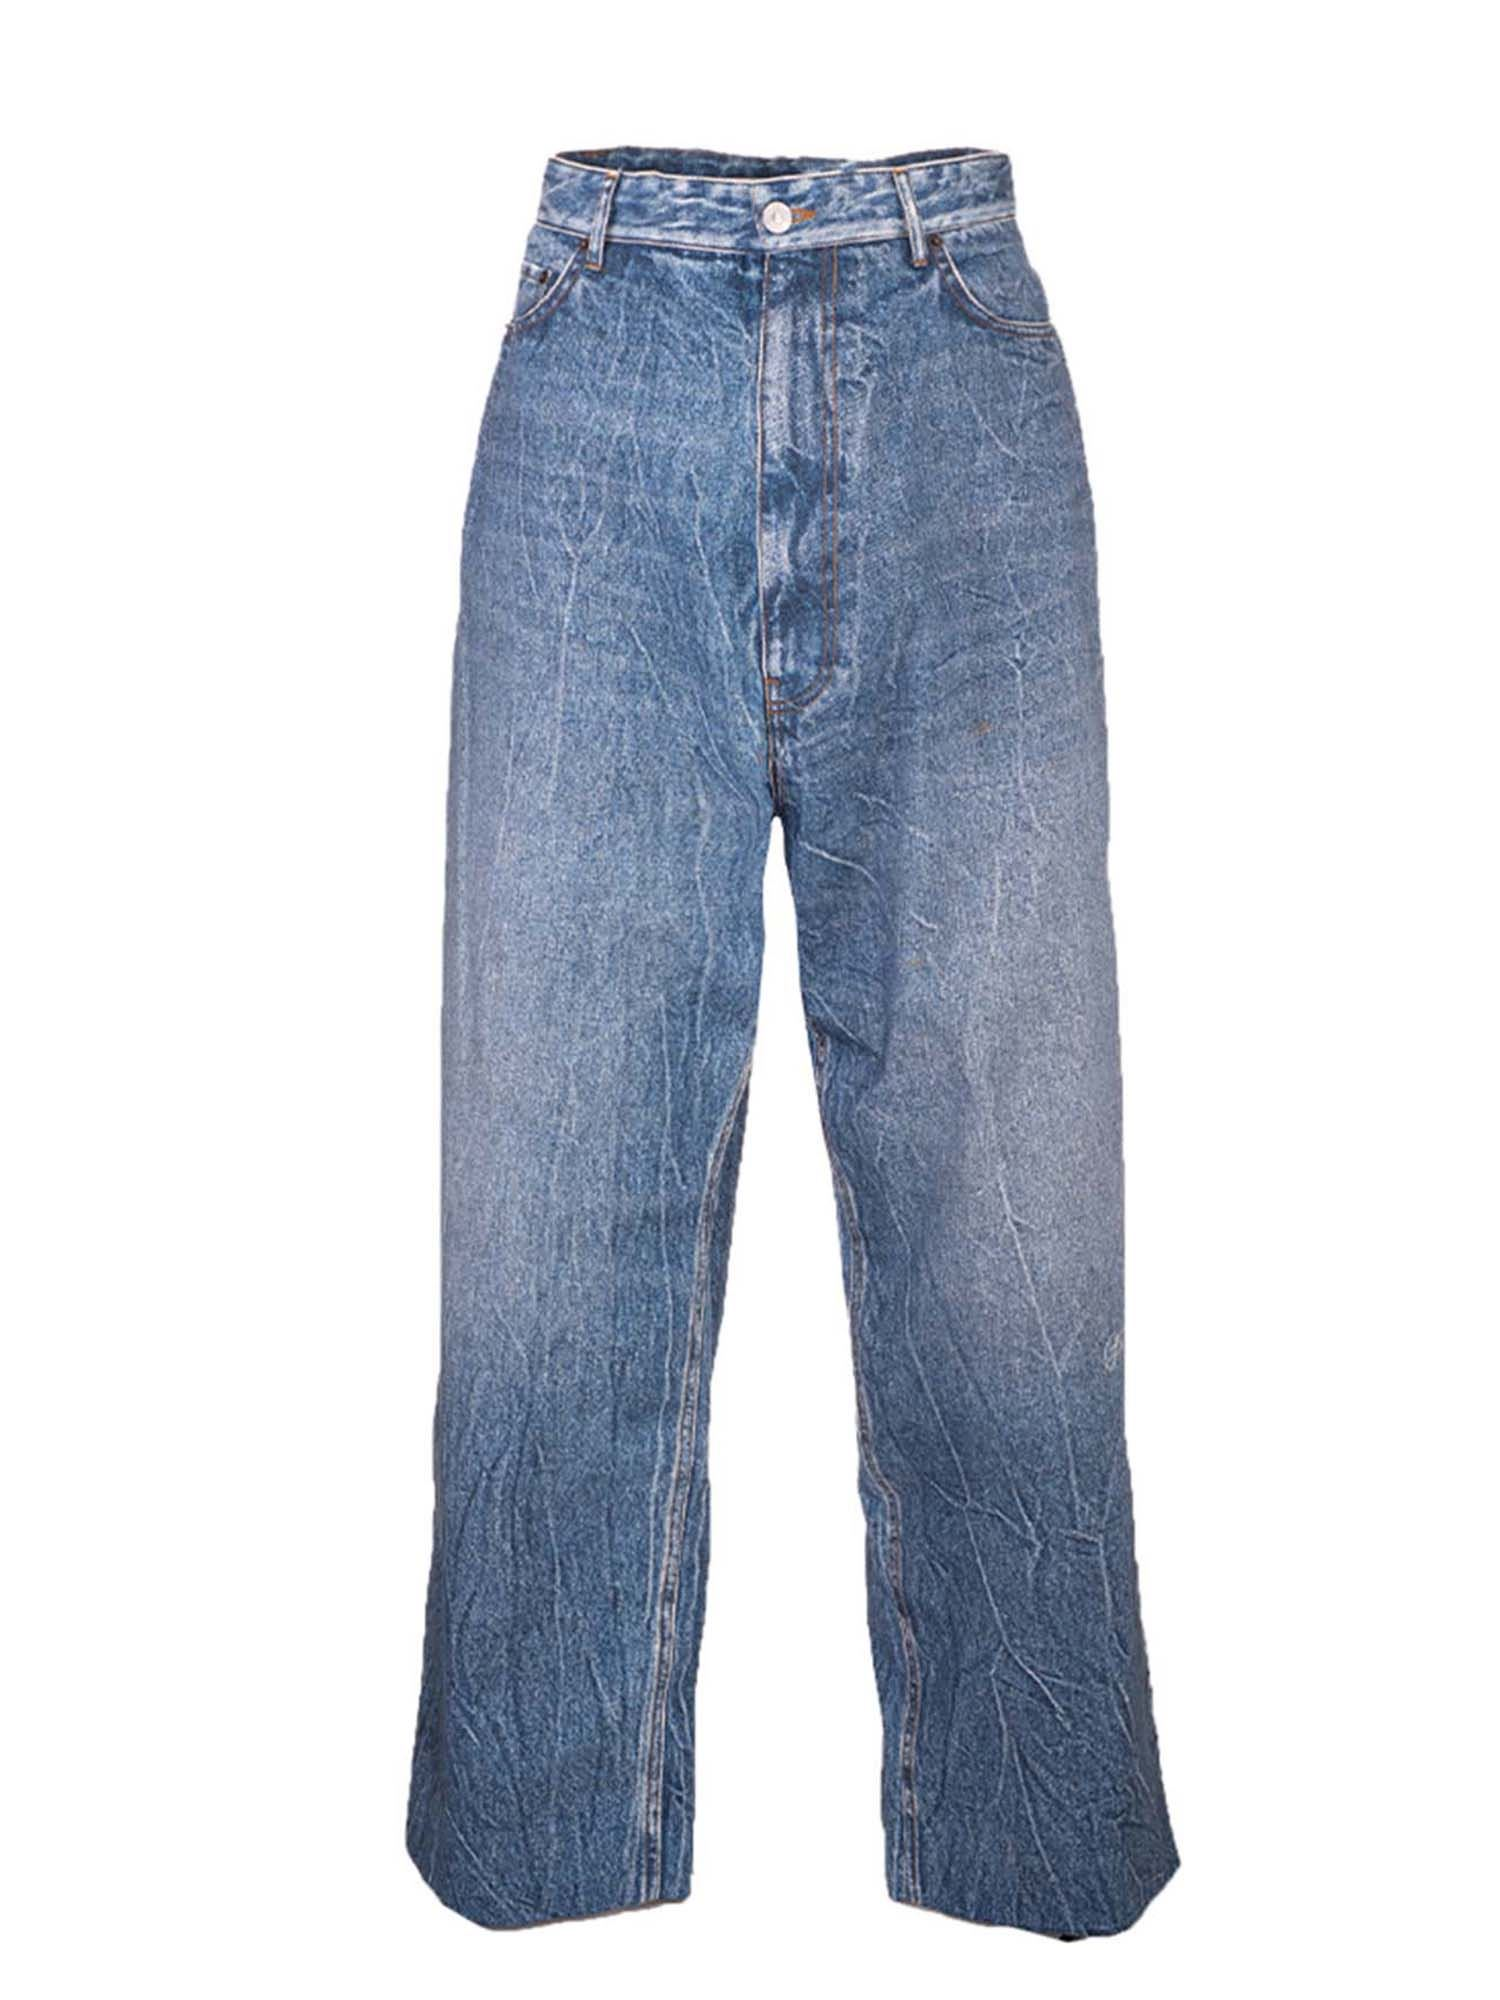 Balenciaga BAGGY TROMPE L'OEIL TROUSERS IN BLUE